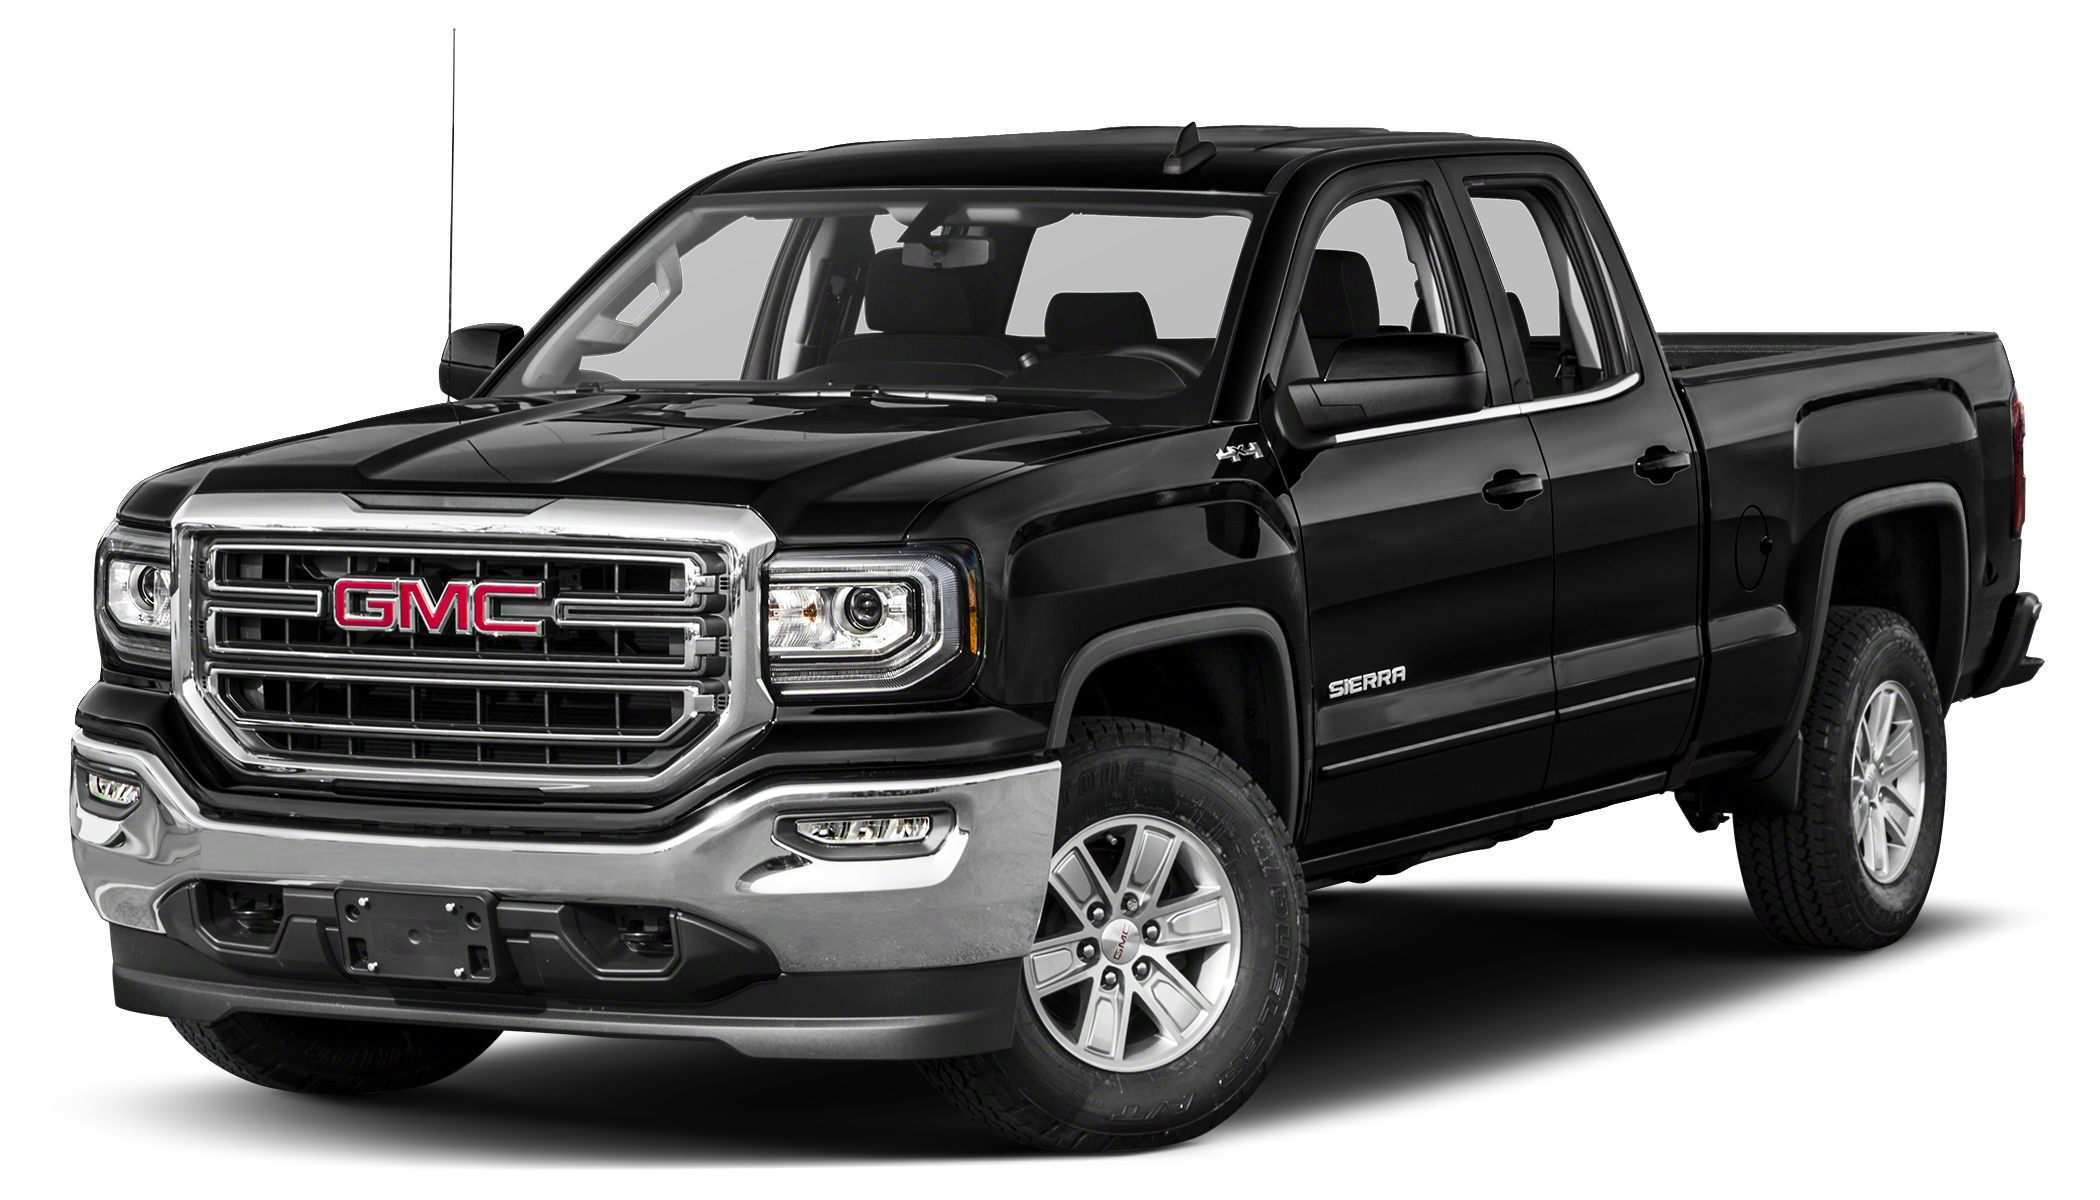 41 Best Review The 2019 Gmc Lease Exterior Exterior and Interior by The 2019 Gmc Lease Exterior